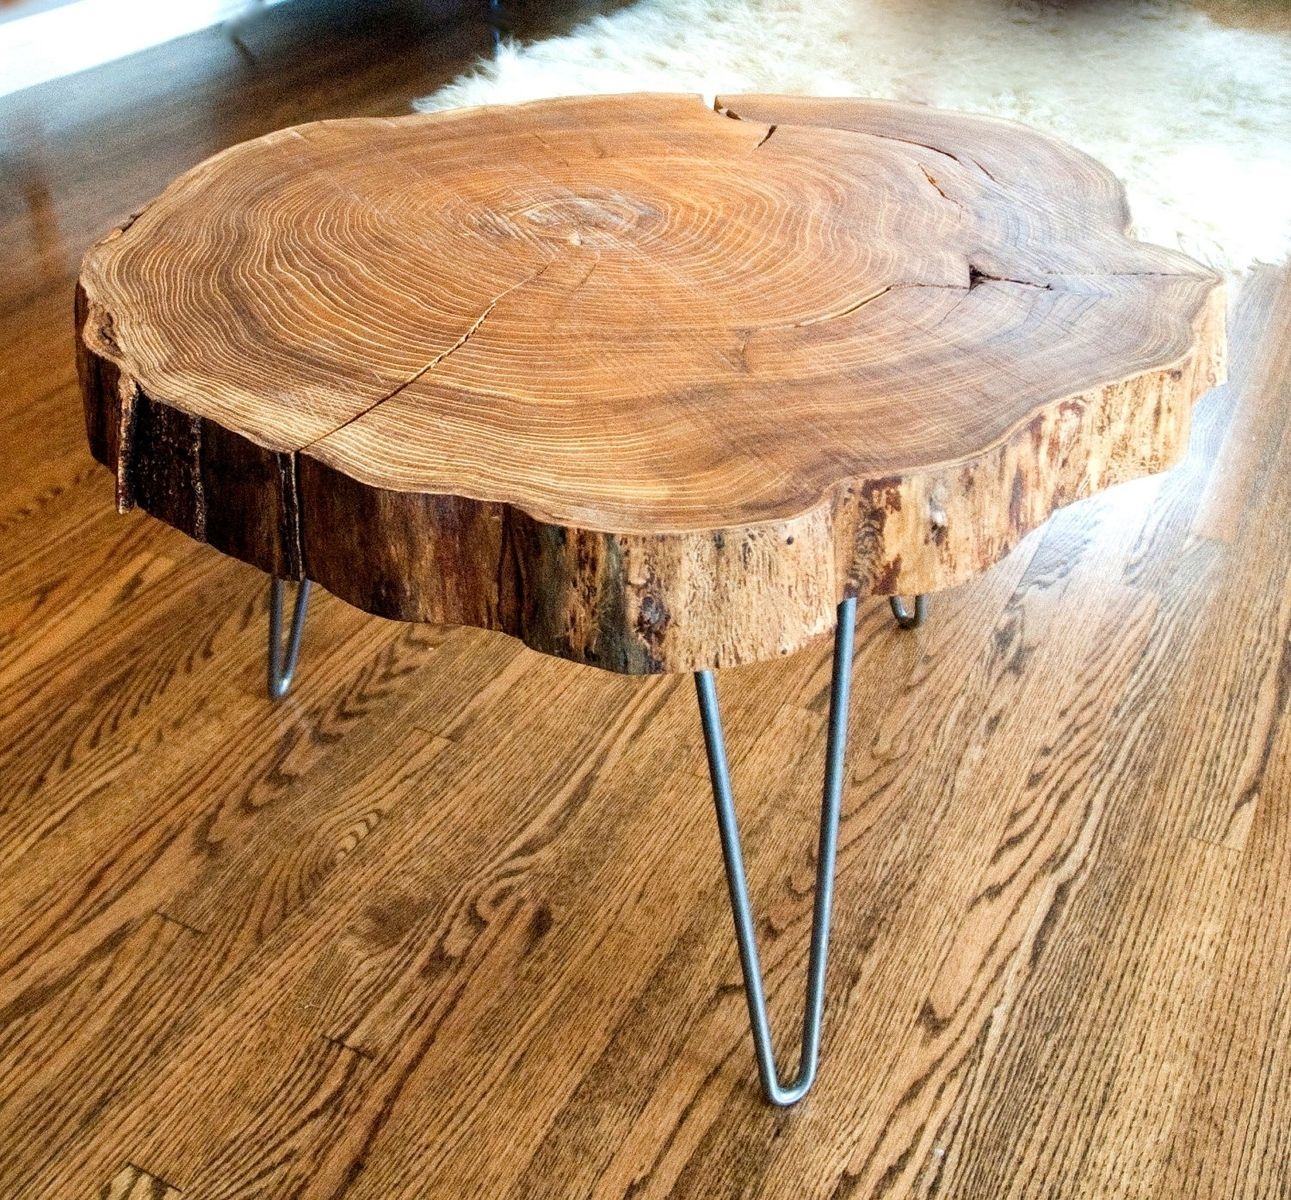 Design Tree Slice Table custom made natural live edge round slab side table coffee with steel legs